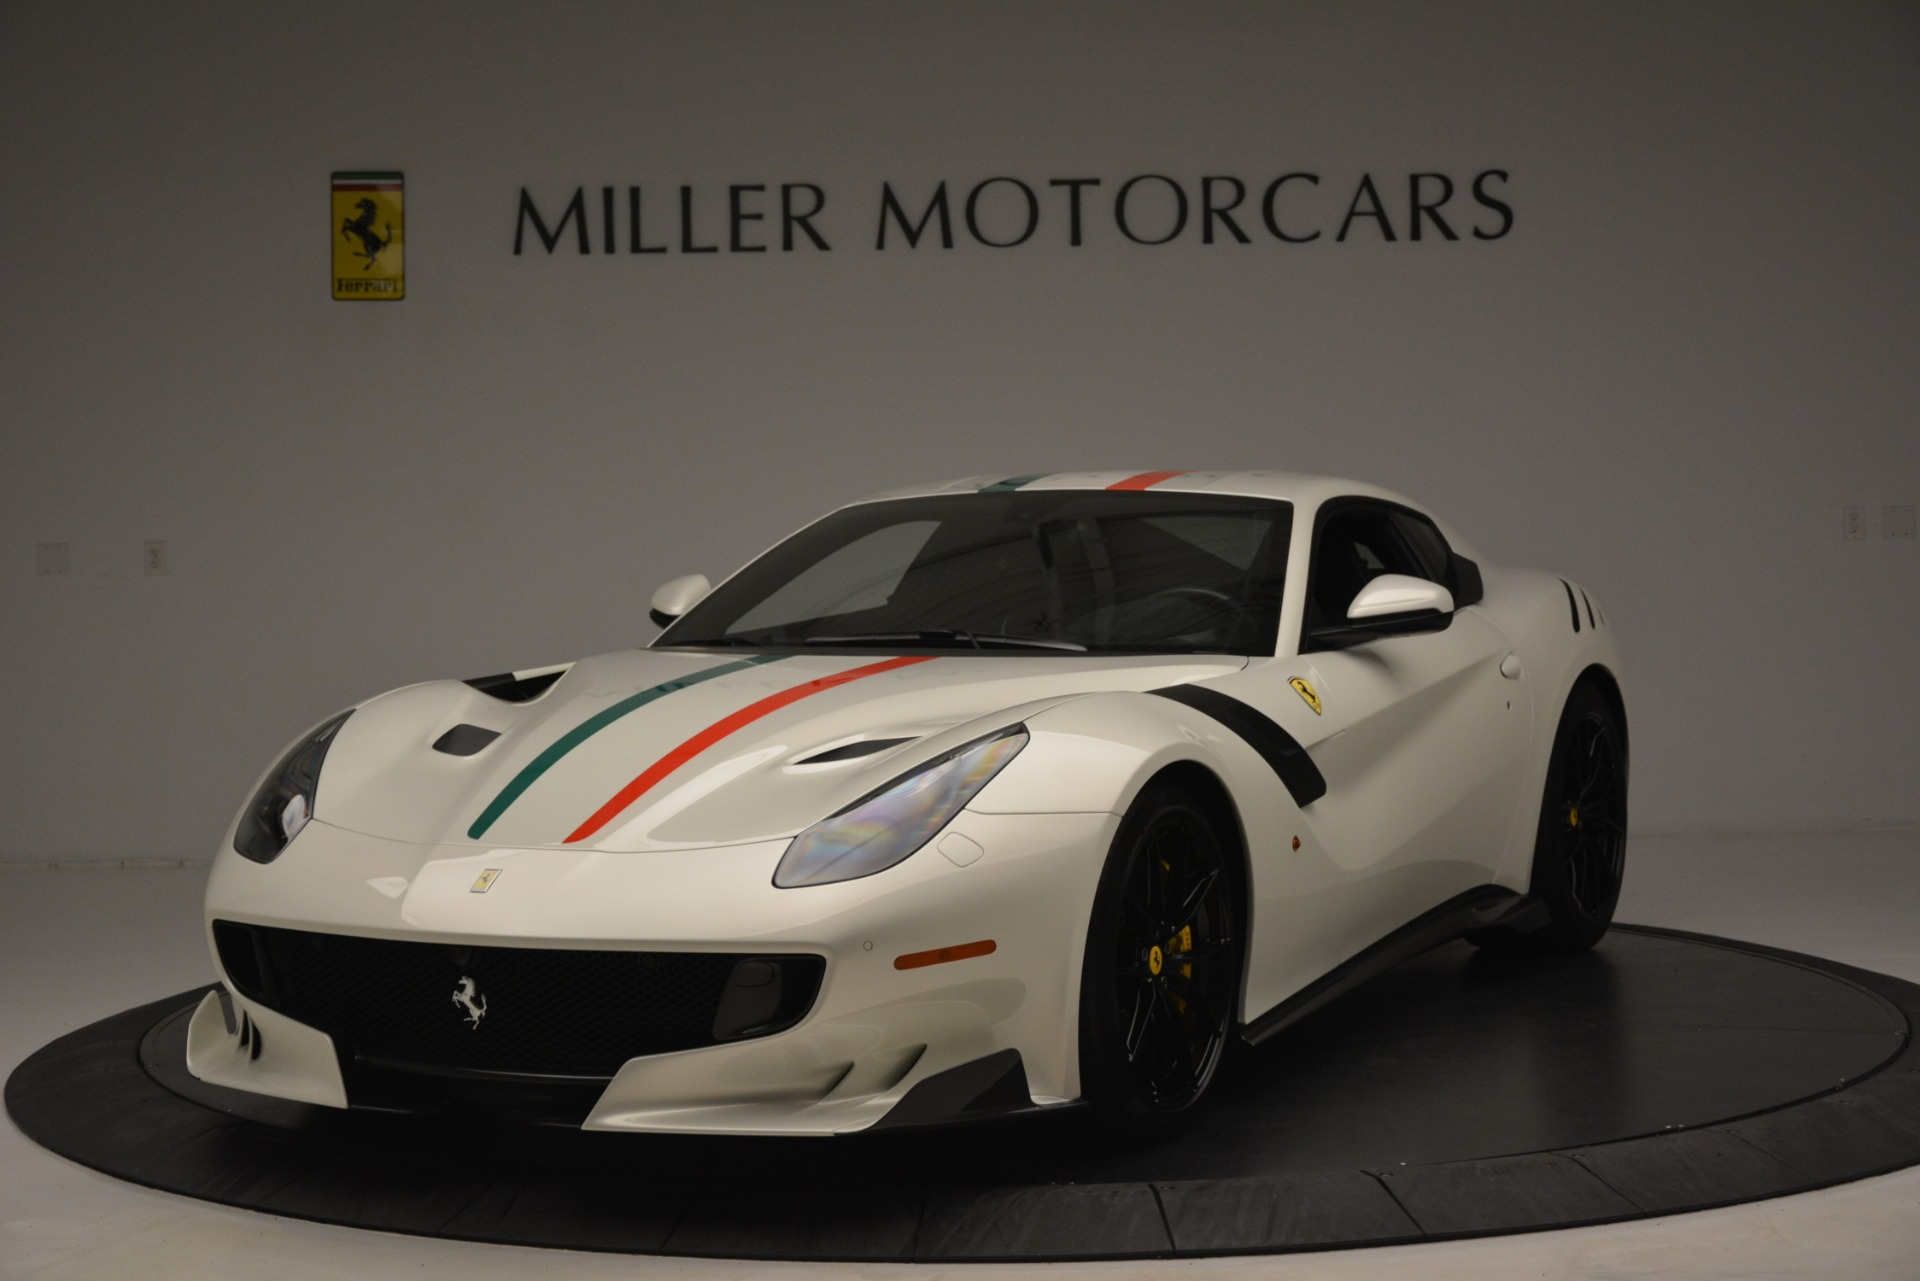 Used 2017 Ferrari F12tdf for sale Sold at Maserati of Greenwich in Greenwich CT 06830 1